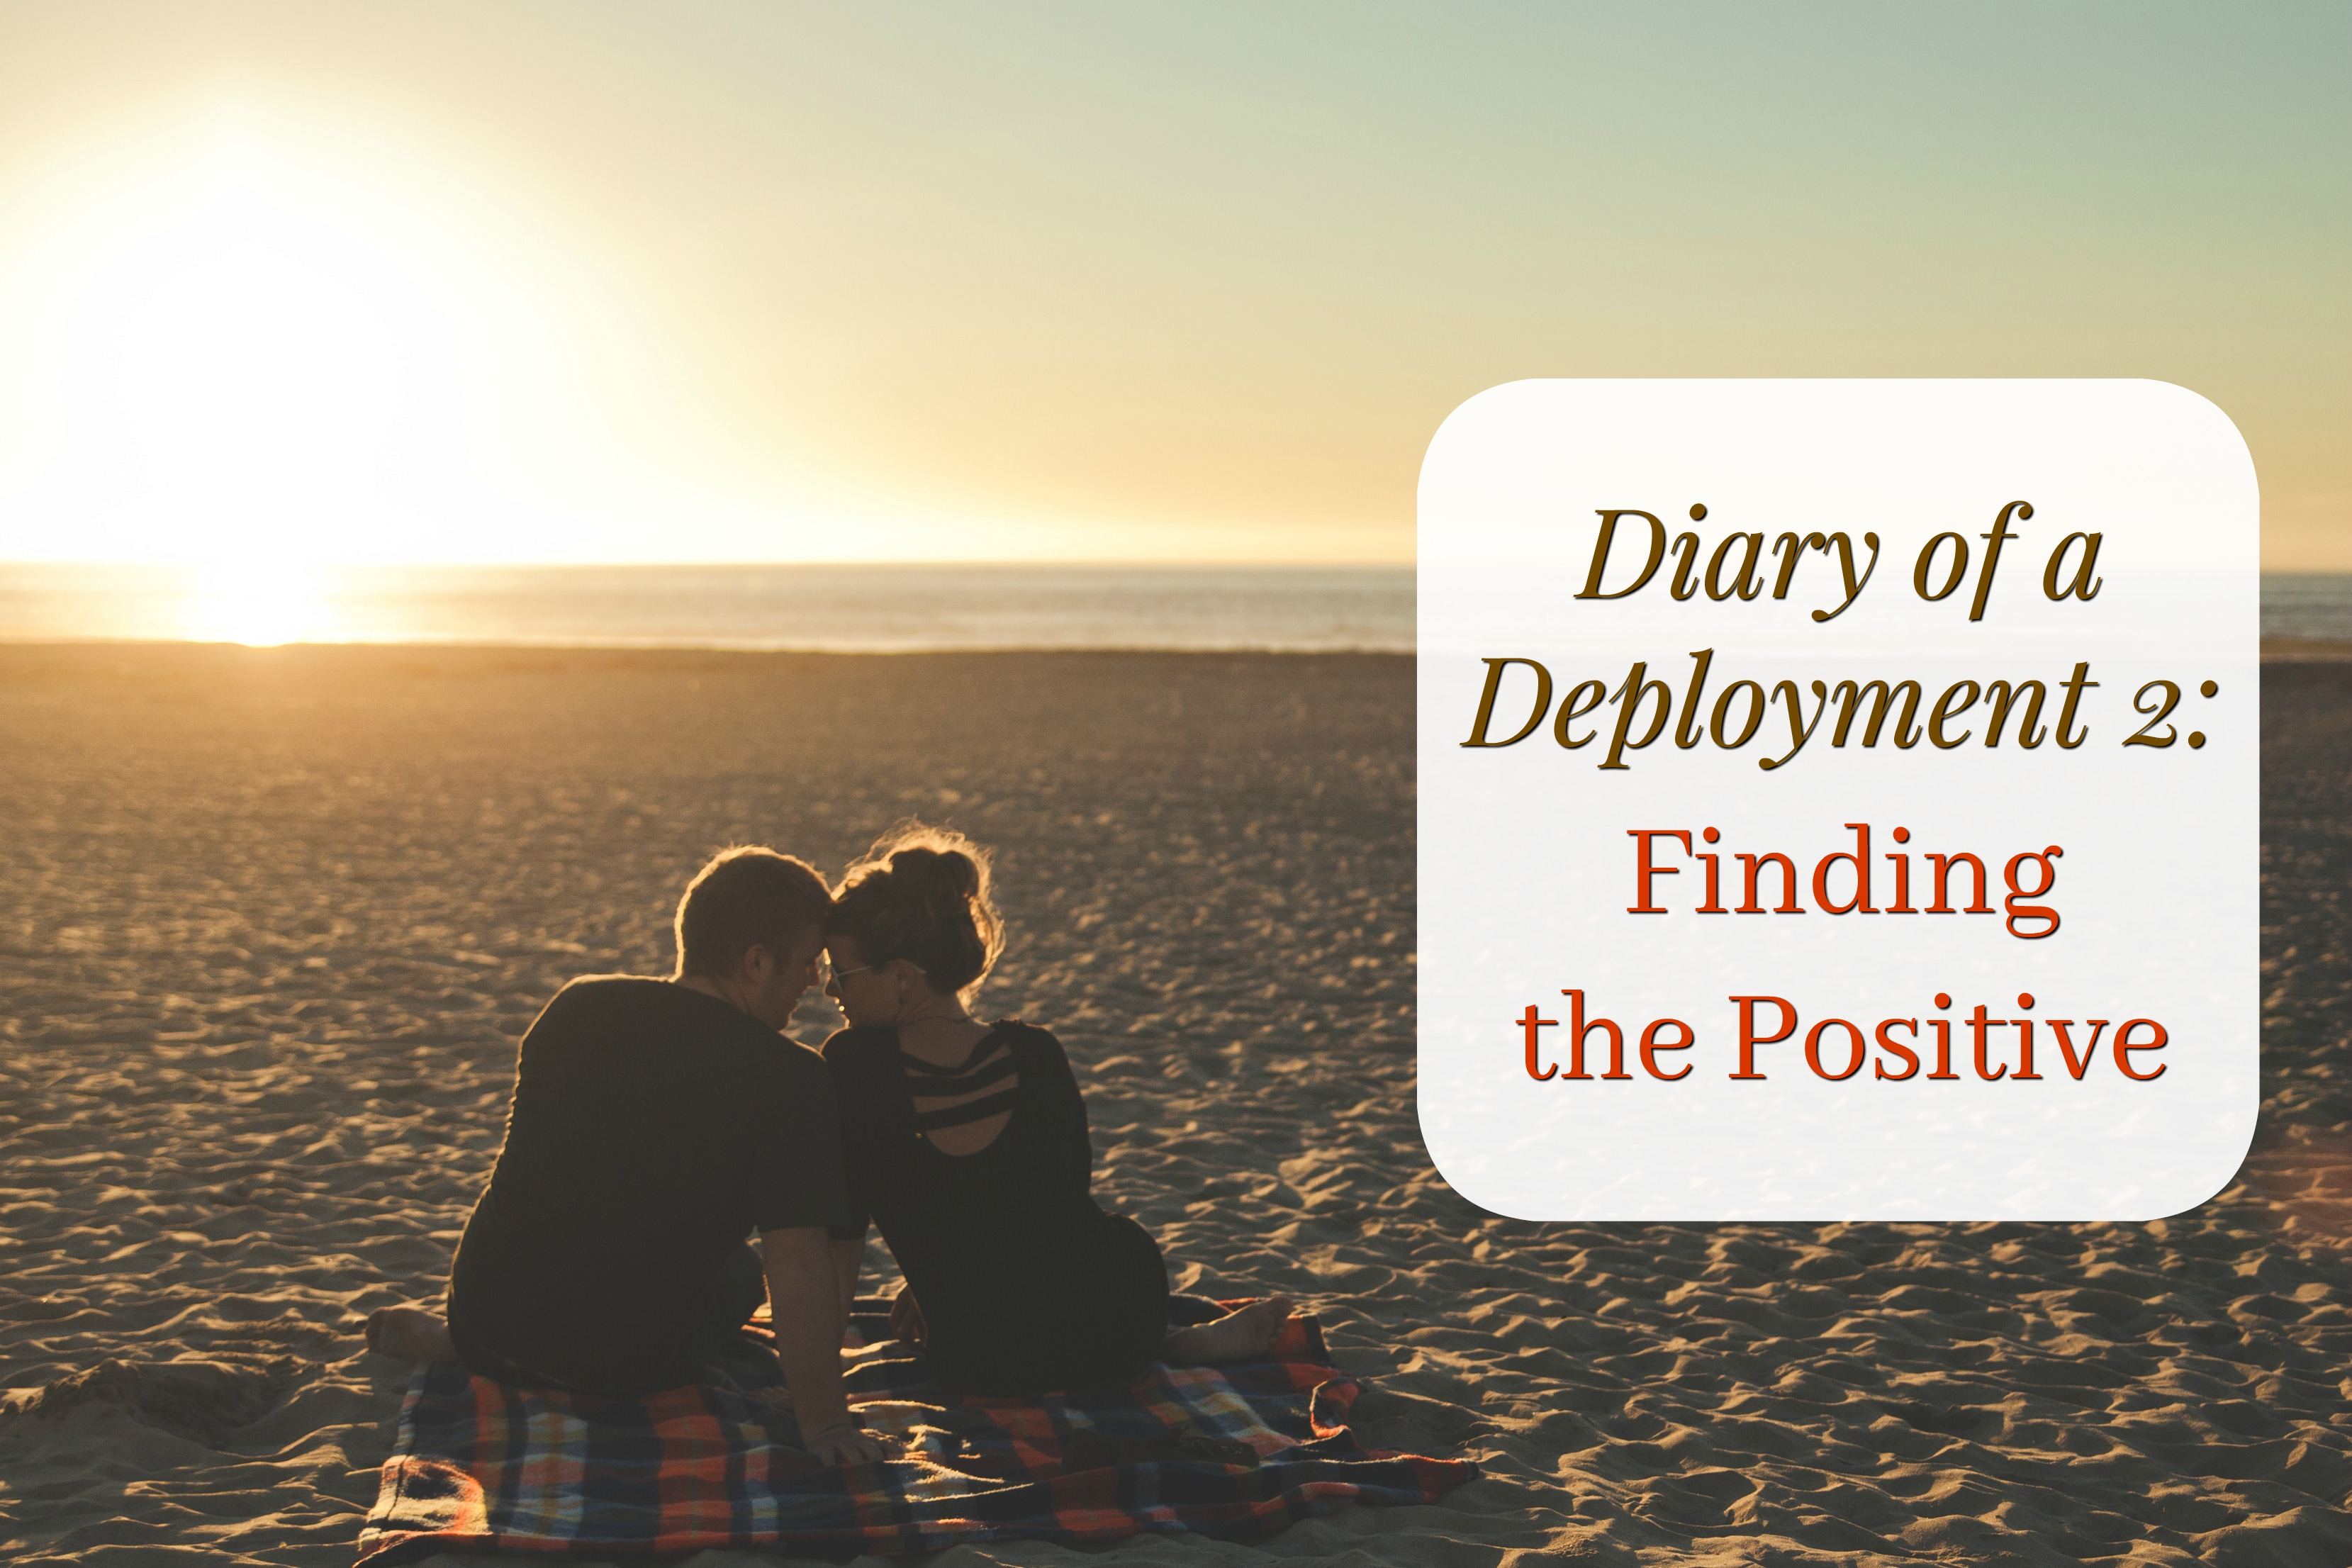 Diary of a Deployment 2: Finding the Positive